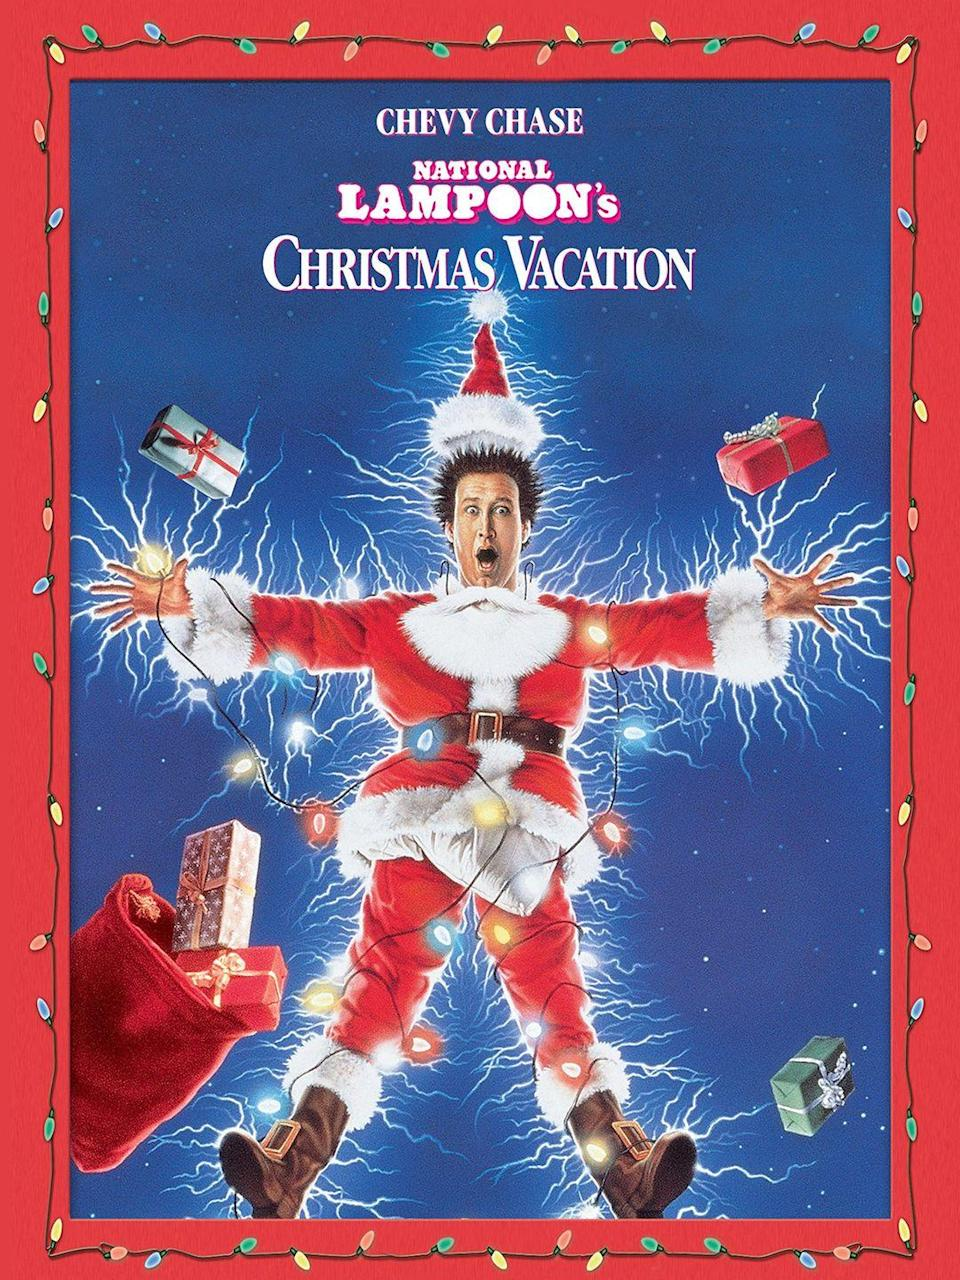 """<p>Dreading going home to visit your relatives this year? Watching this Chevy Chase movie will make anything your family does this Christmas seem totally normal in comparison.</p><p><a class=""""link rapid-noclick-resp"""" href=""""https://www.amazon.com/National-Lampoons-Christmas-Vacation-Chevy/dp/B009IU6BIS/?tag=syn-yahoo-20&ascsubtag=%5Bartid%7C10055.g.1315%5Bsrc%7Cyahoo-us"""" rel=""""nofollow noopener"""" target=""""_blank"""" data-ylk=""""slk:WATCH NOW"""">WATCH NOW</a></p>"""